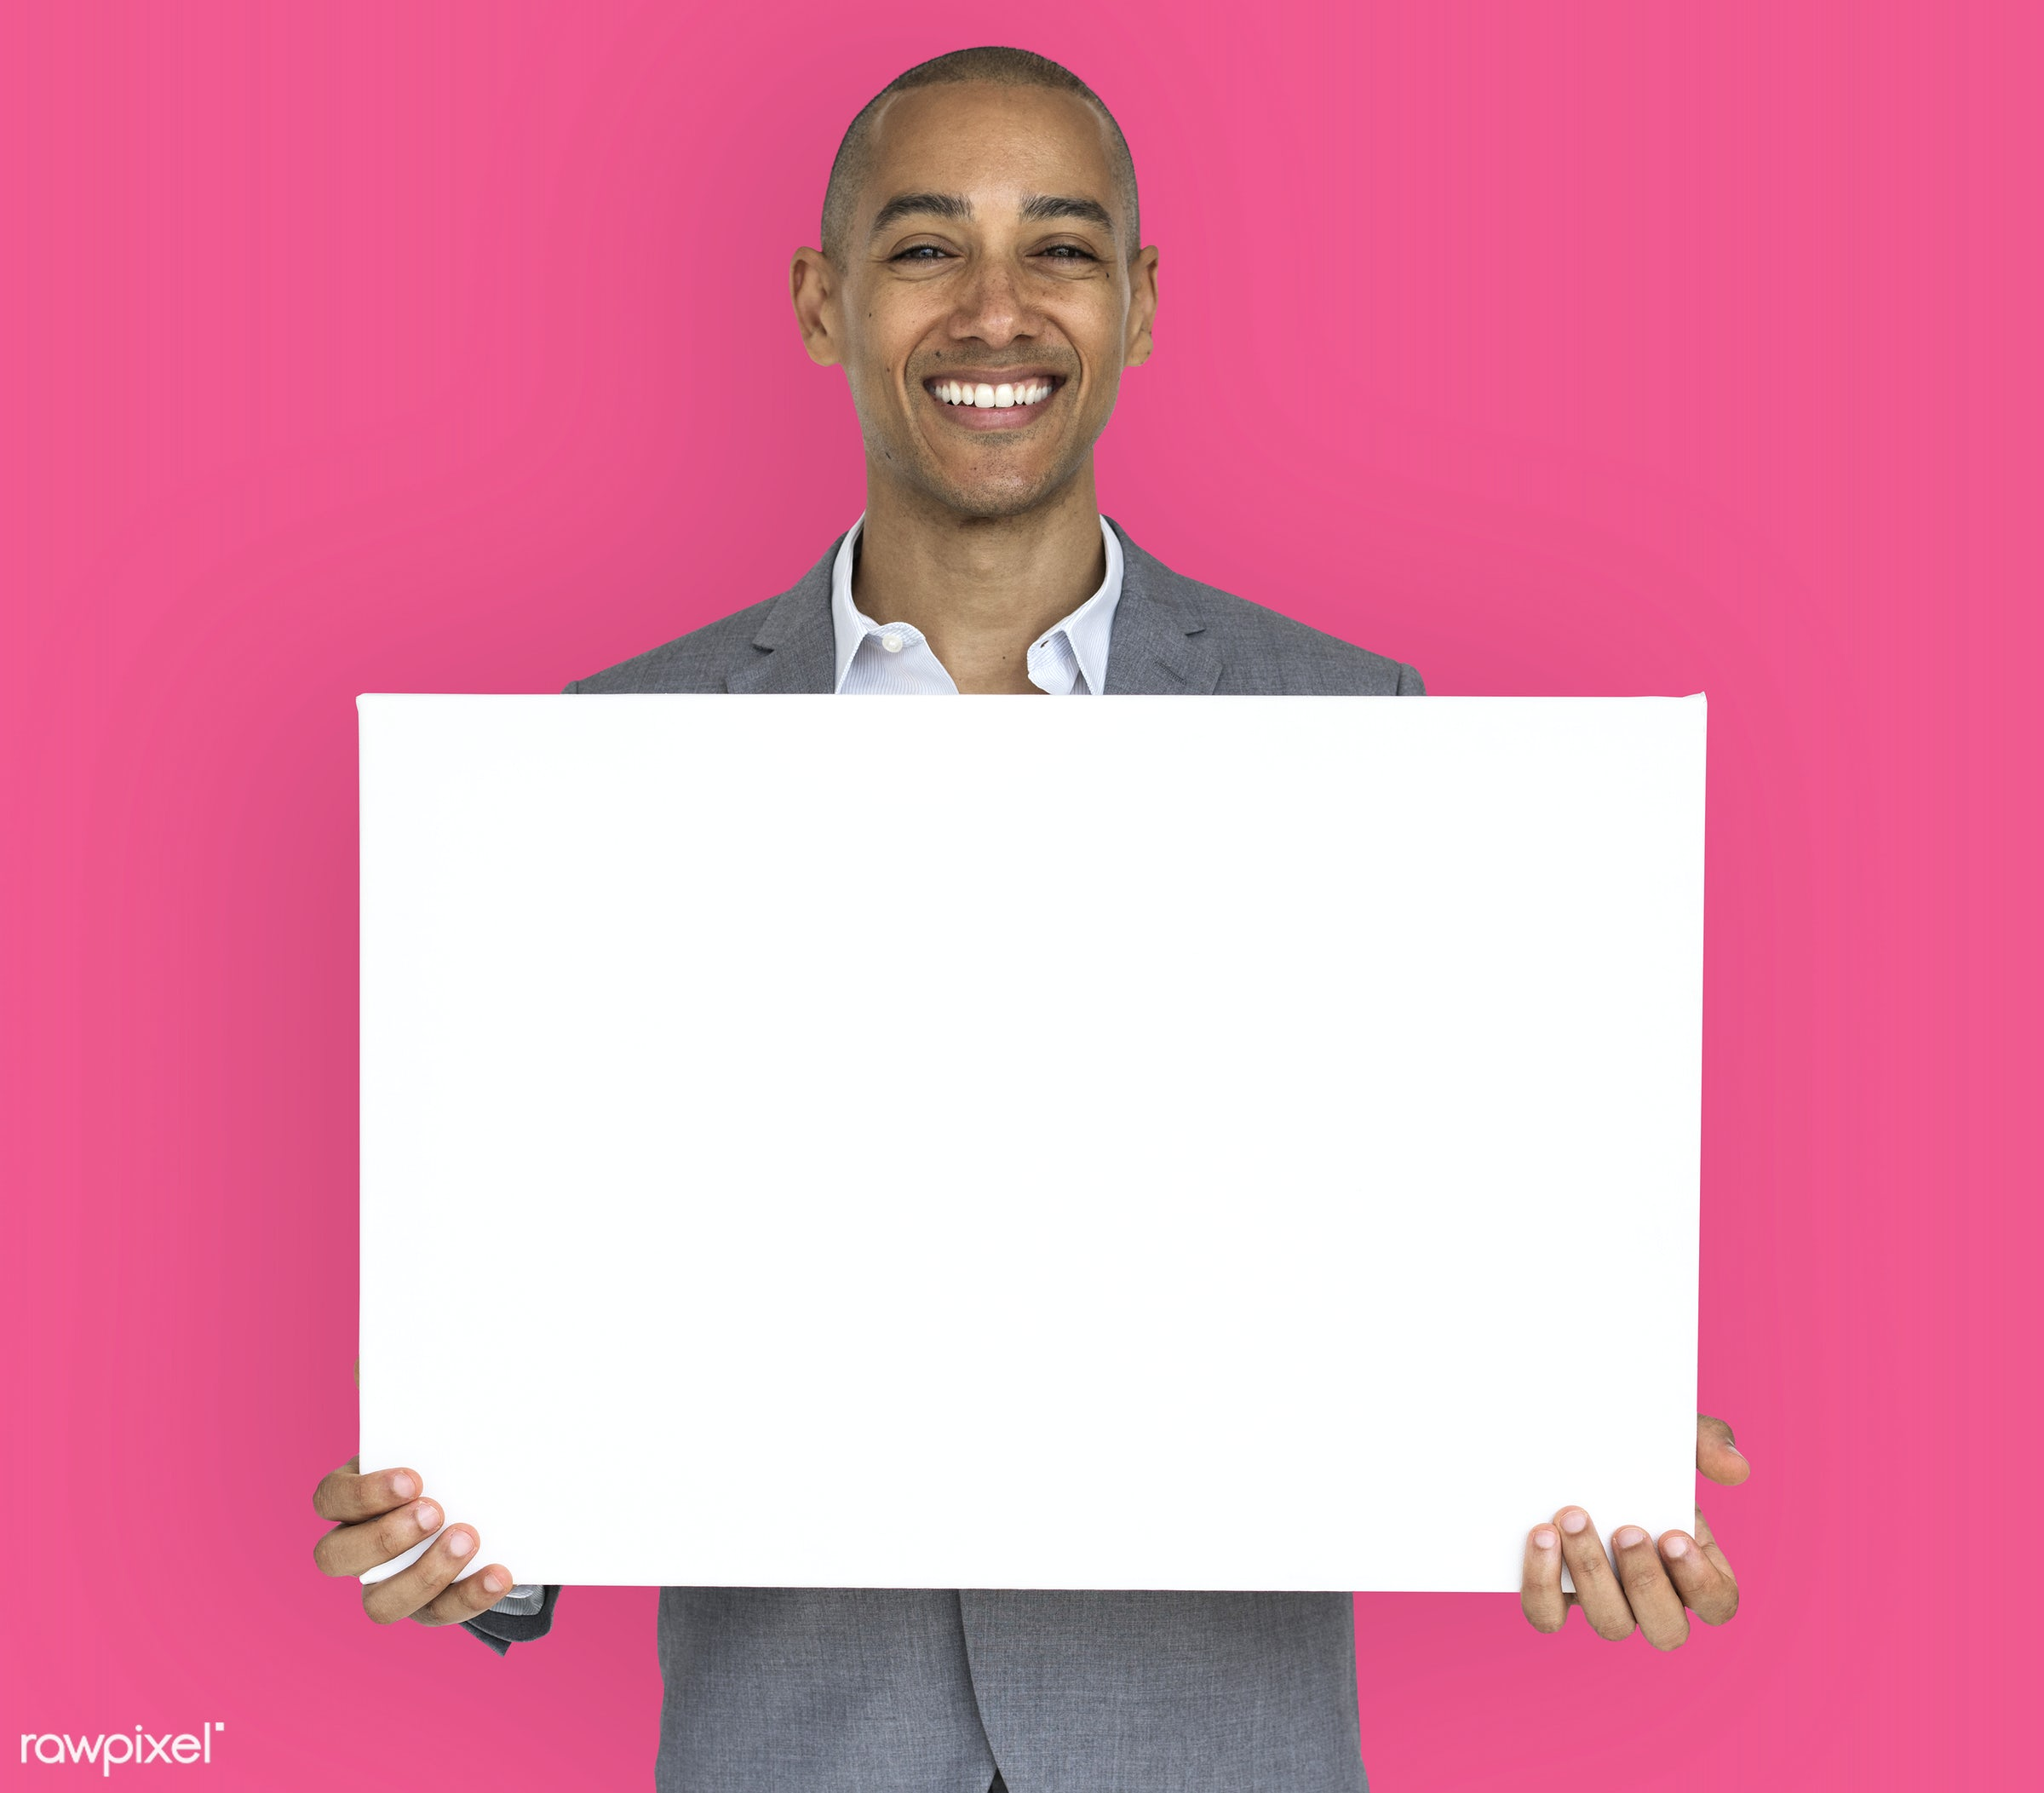 expression, studio, copy space, person, holding, joy, people, business, placard, businessman, happy, pink, mixed race, smile...